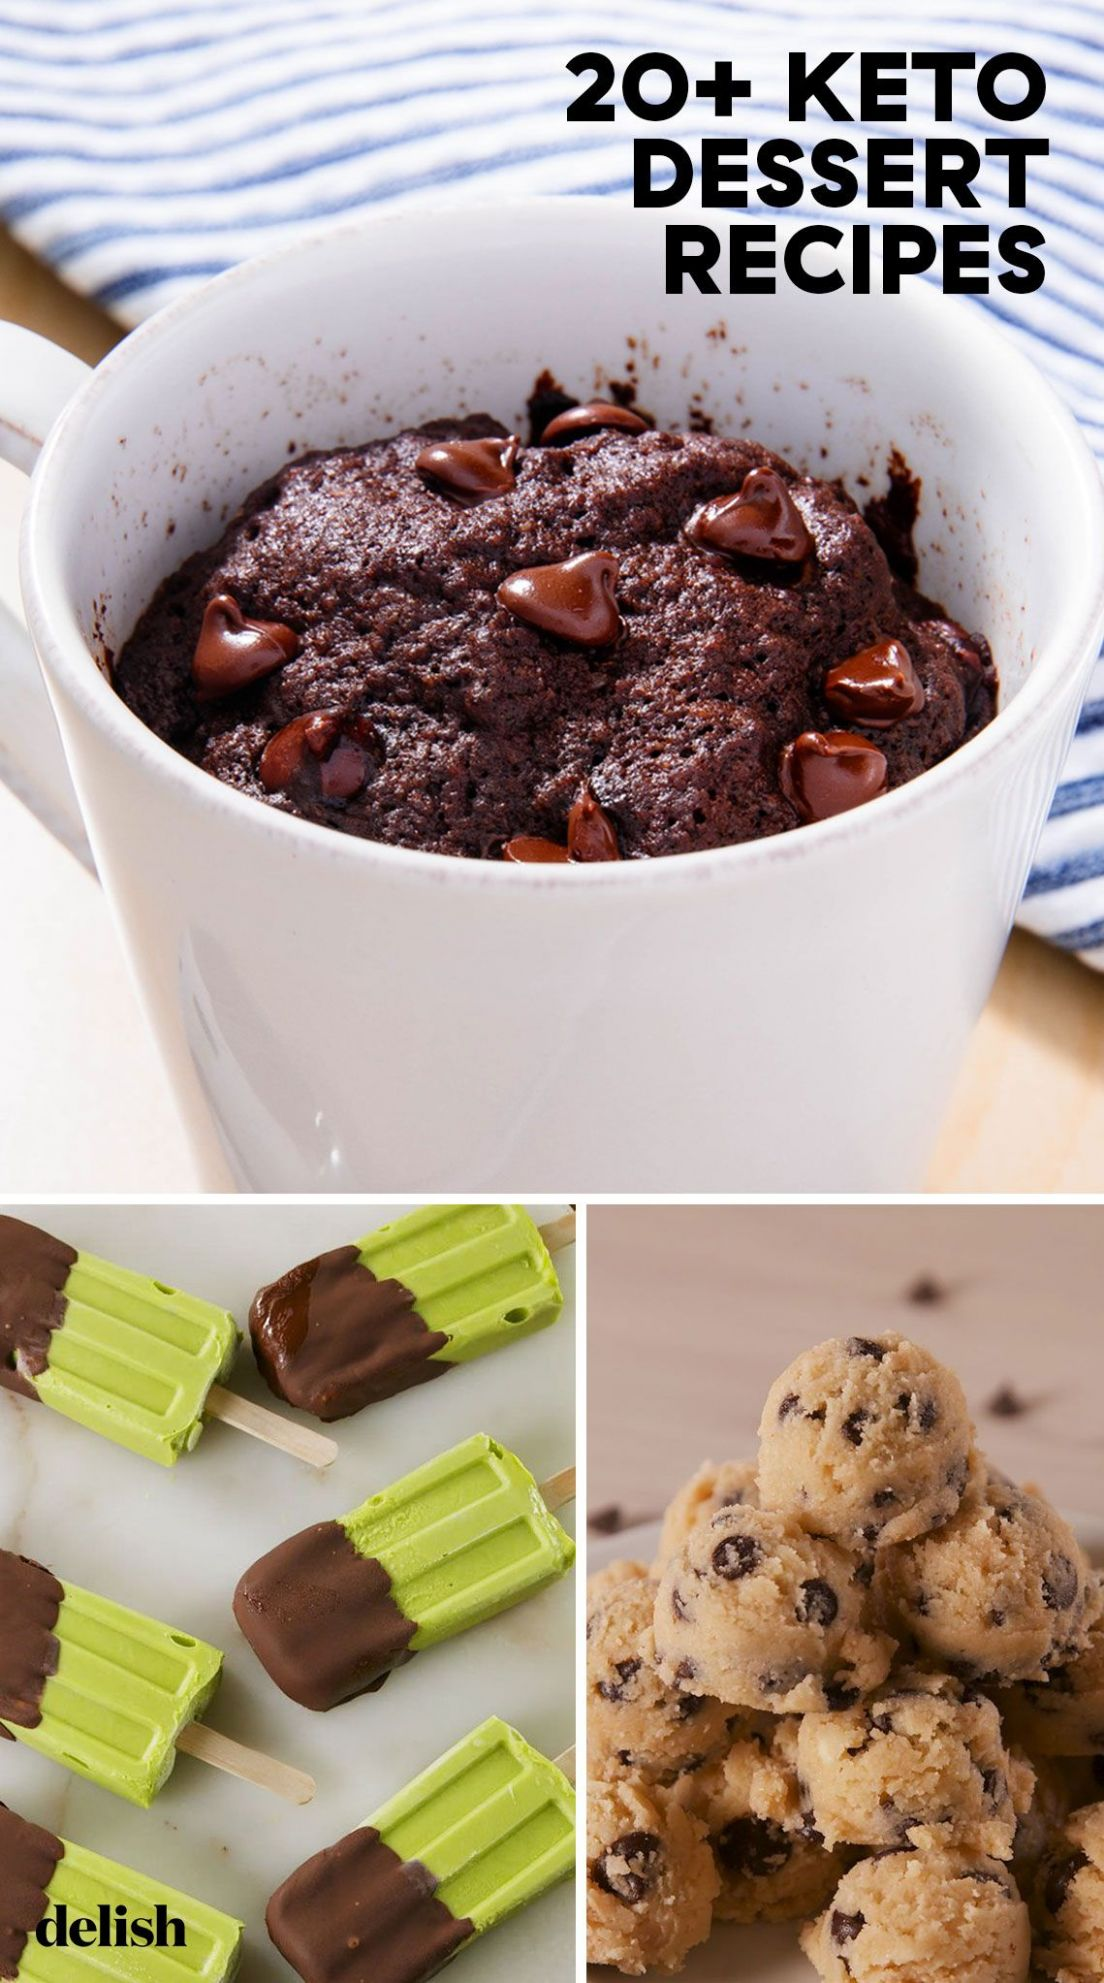 8+ Easy Keto Dessert Recipes - Best Low Carb Desserts for Keto Diets